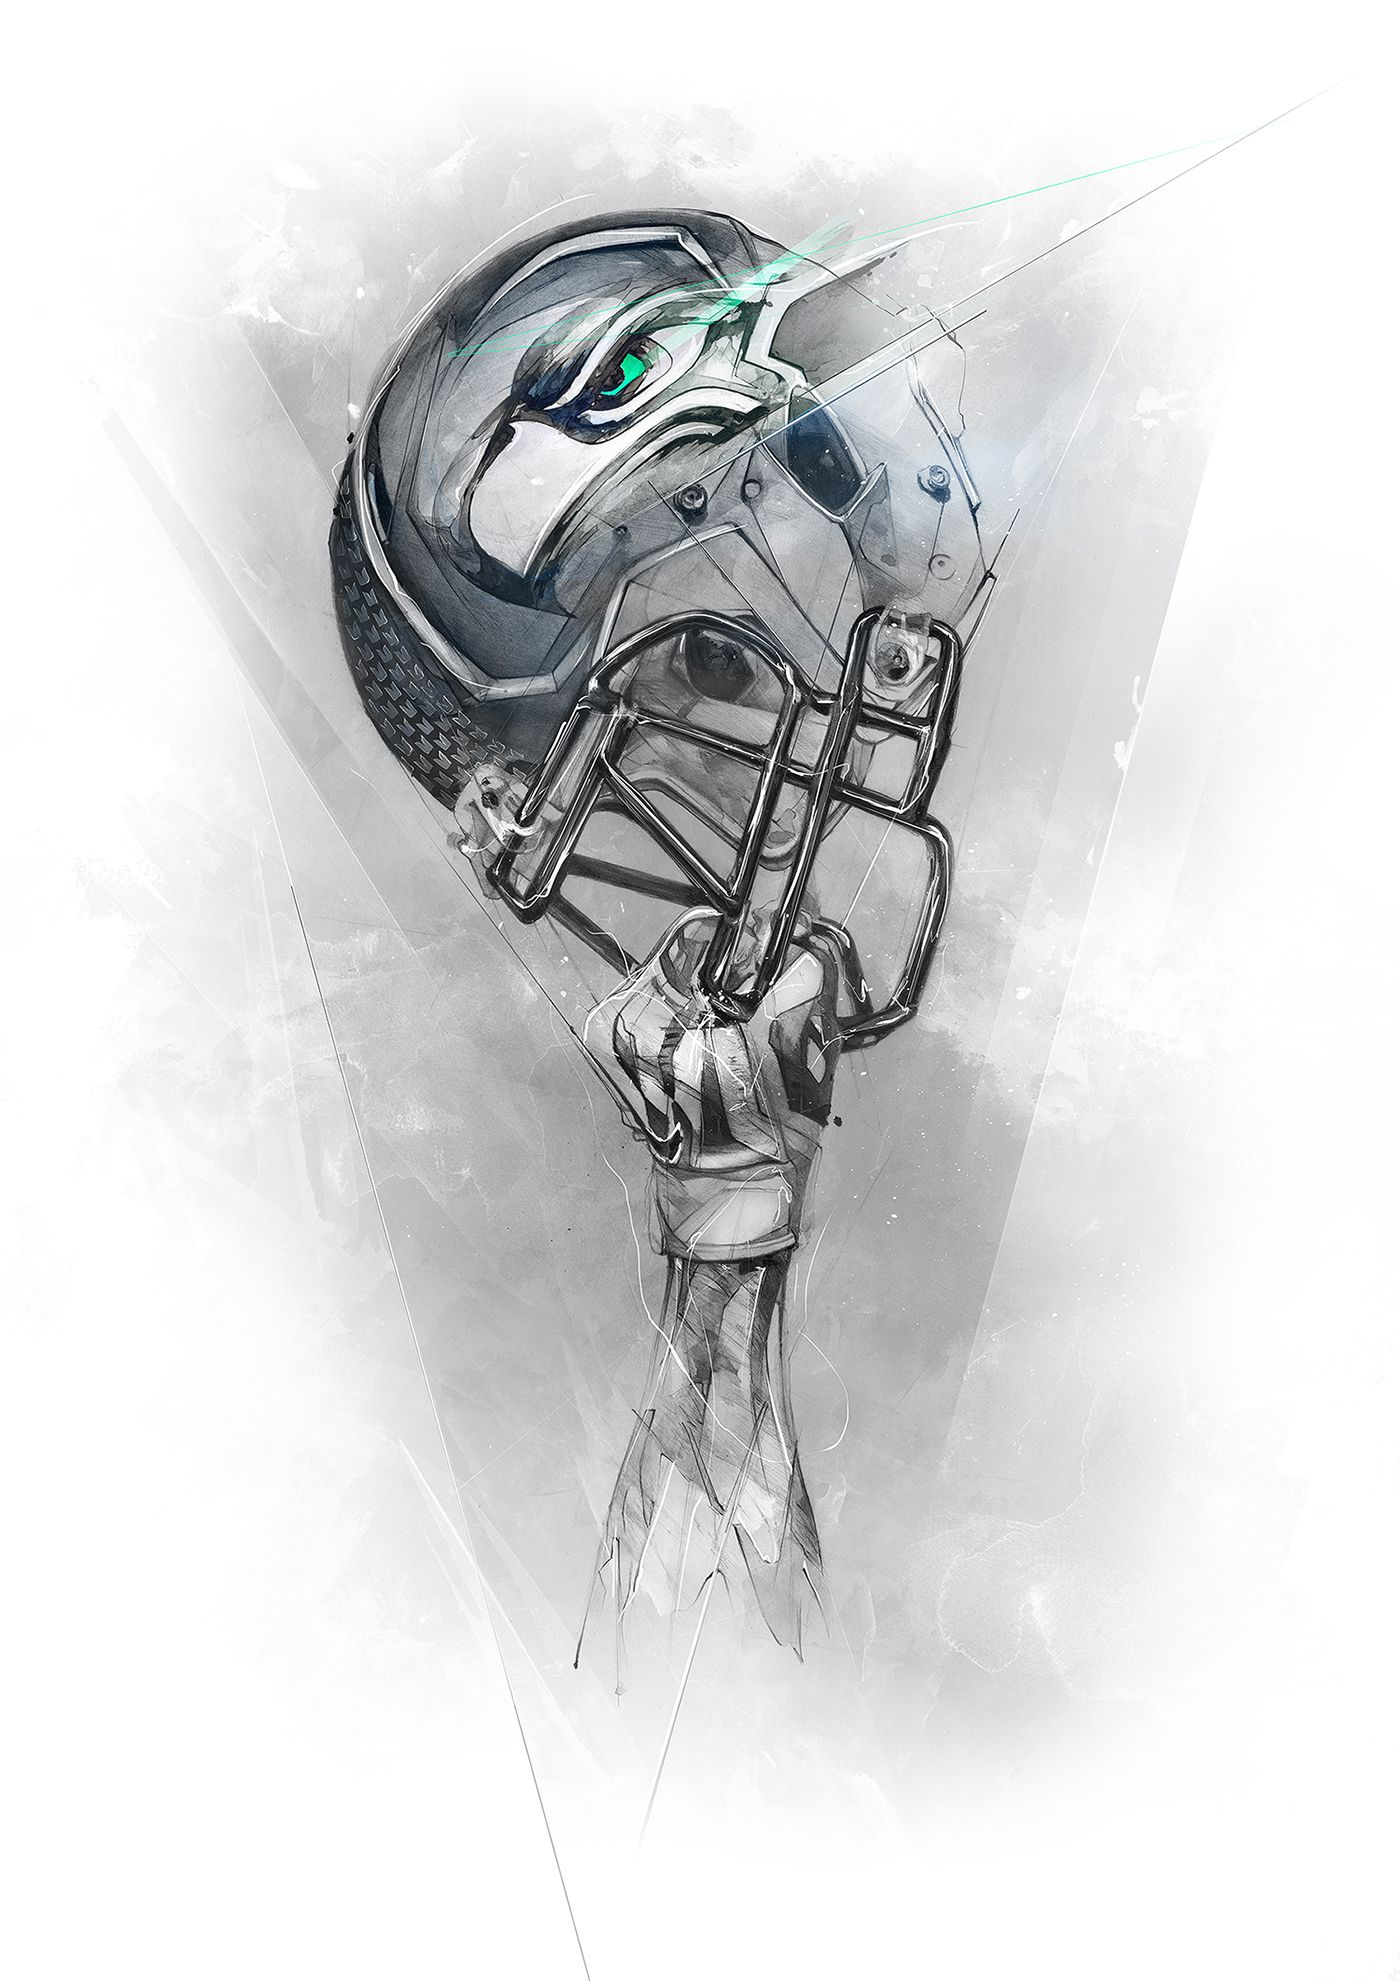 Commissioned work by nike to design tees for nfl and ncaa teams